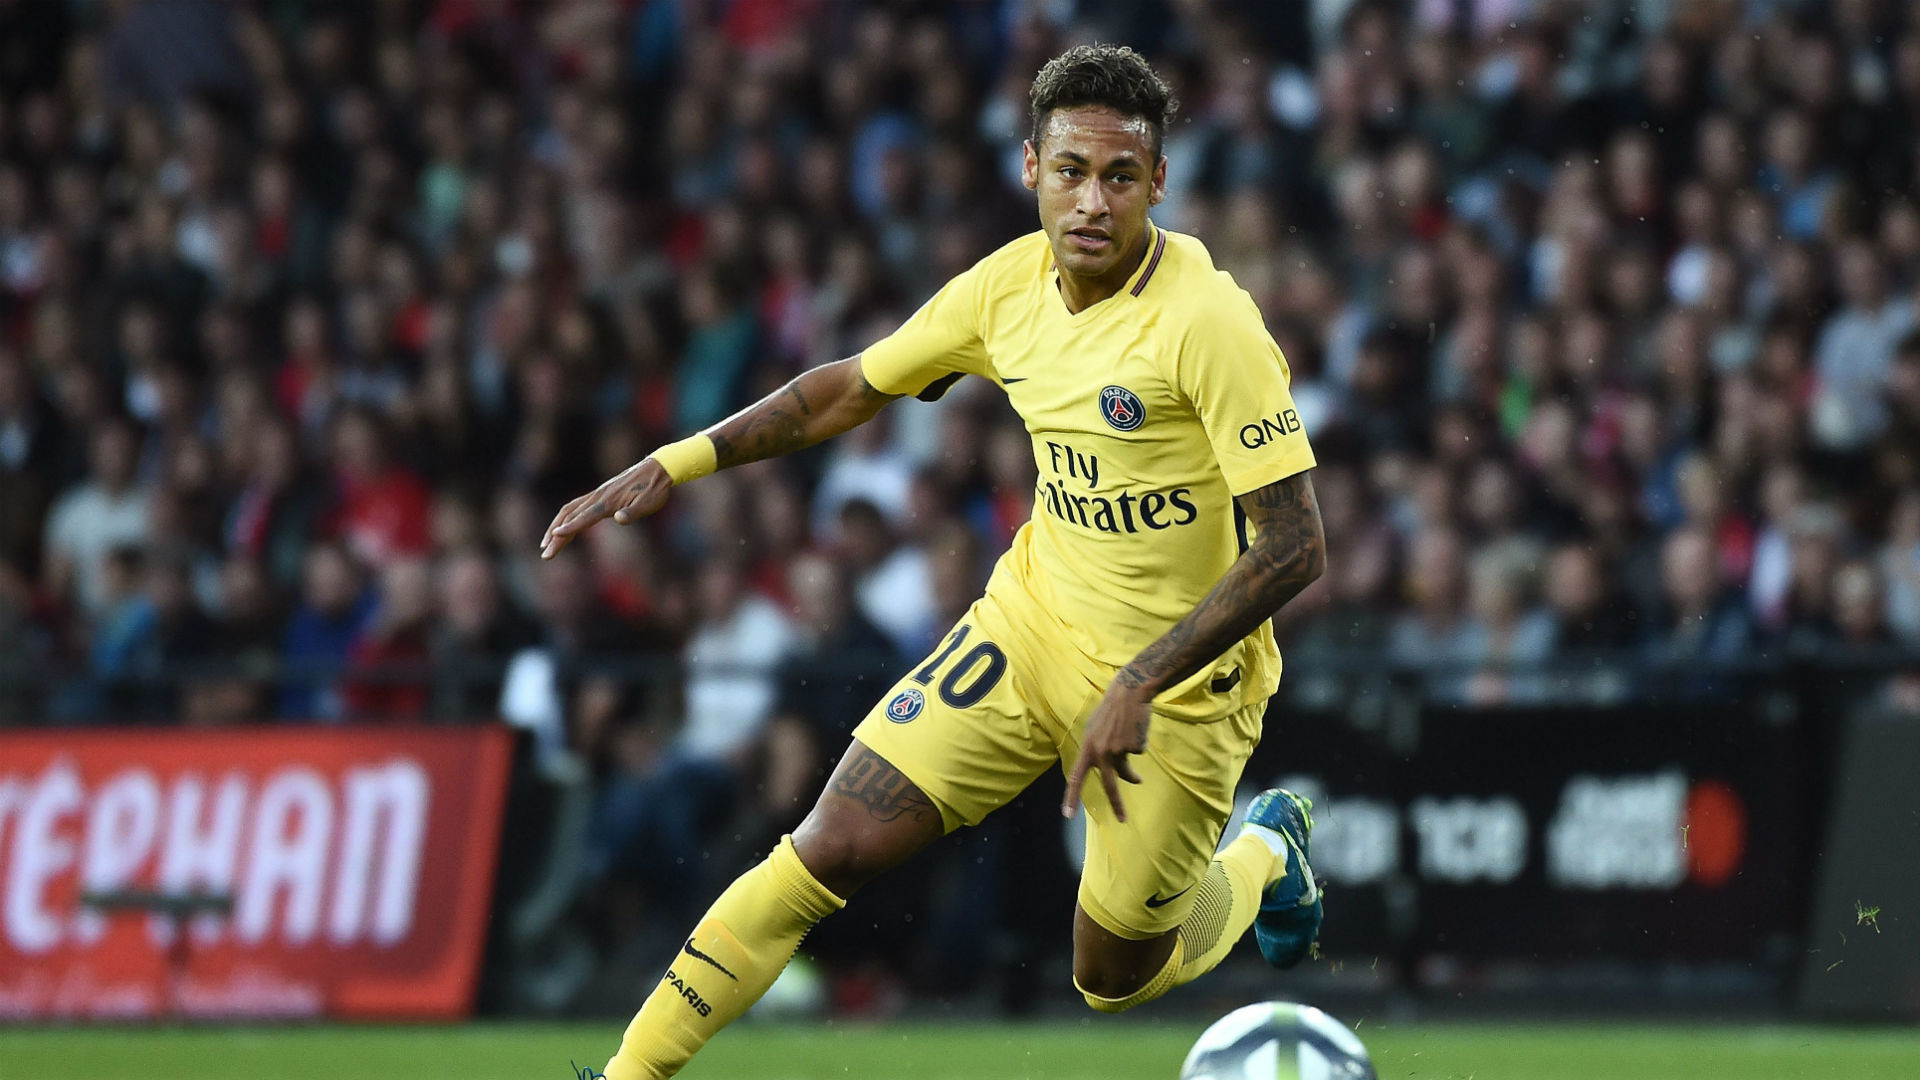 Neymar scores, provides assist on PSG debut